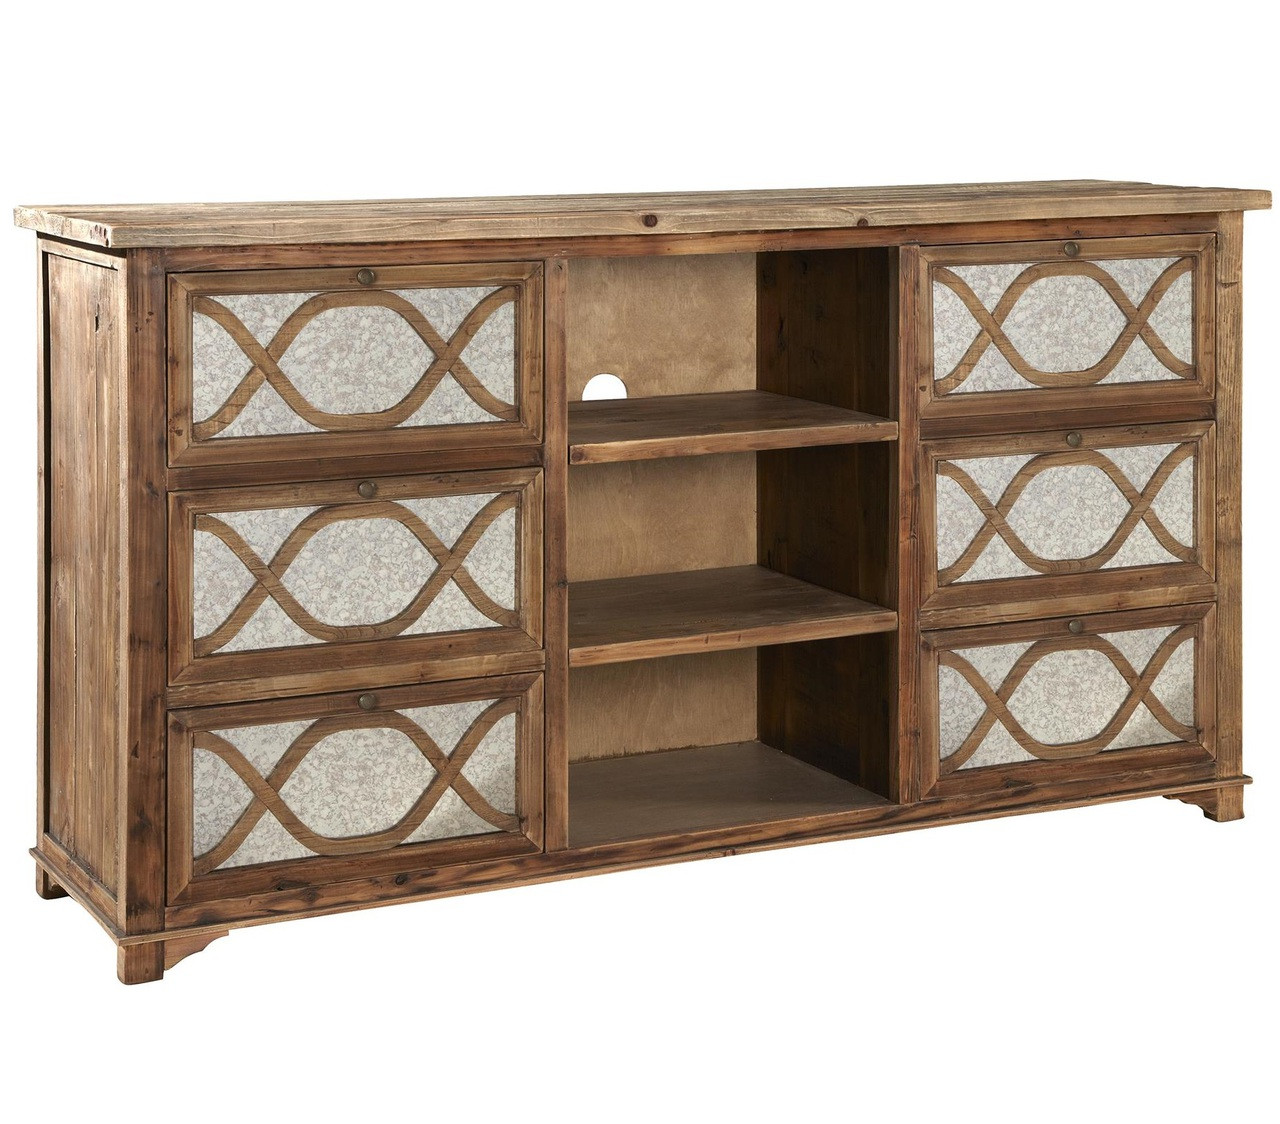 wood and mirrored furniture. Interesting And French Lattice Reclaimed Wood Mirrored Media Cabinet For And Furniture A